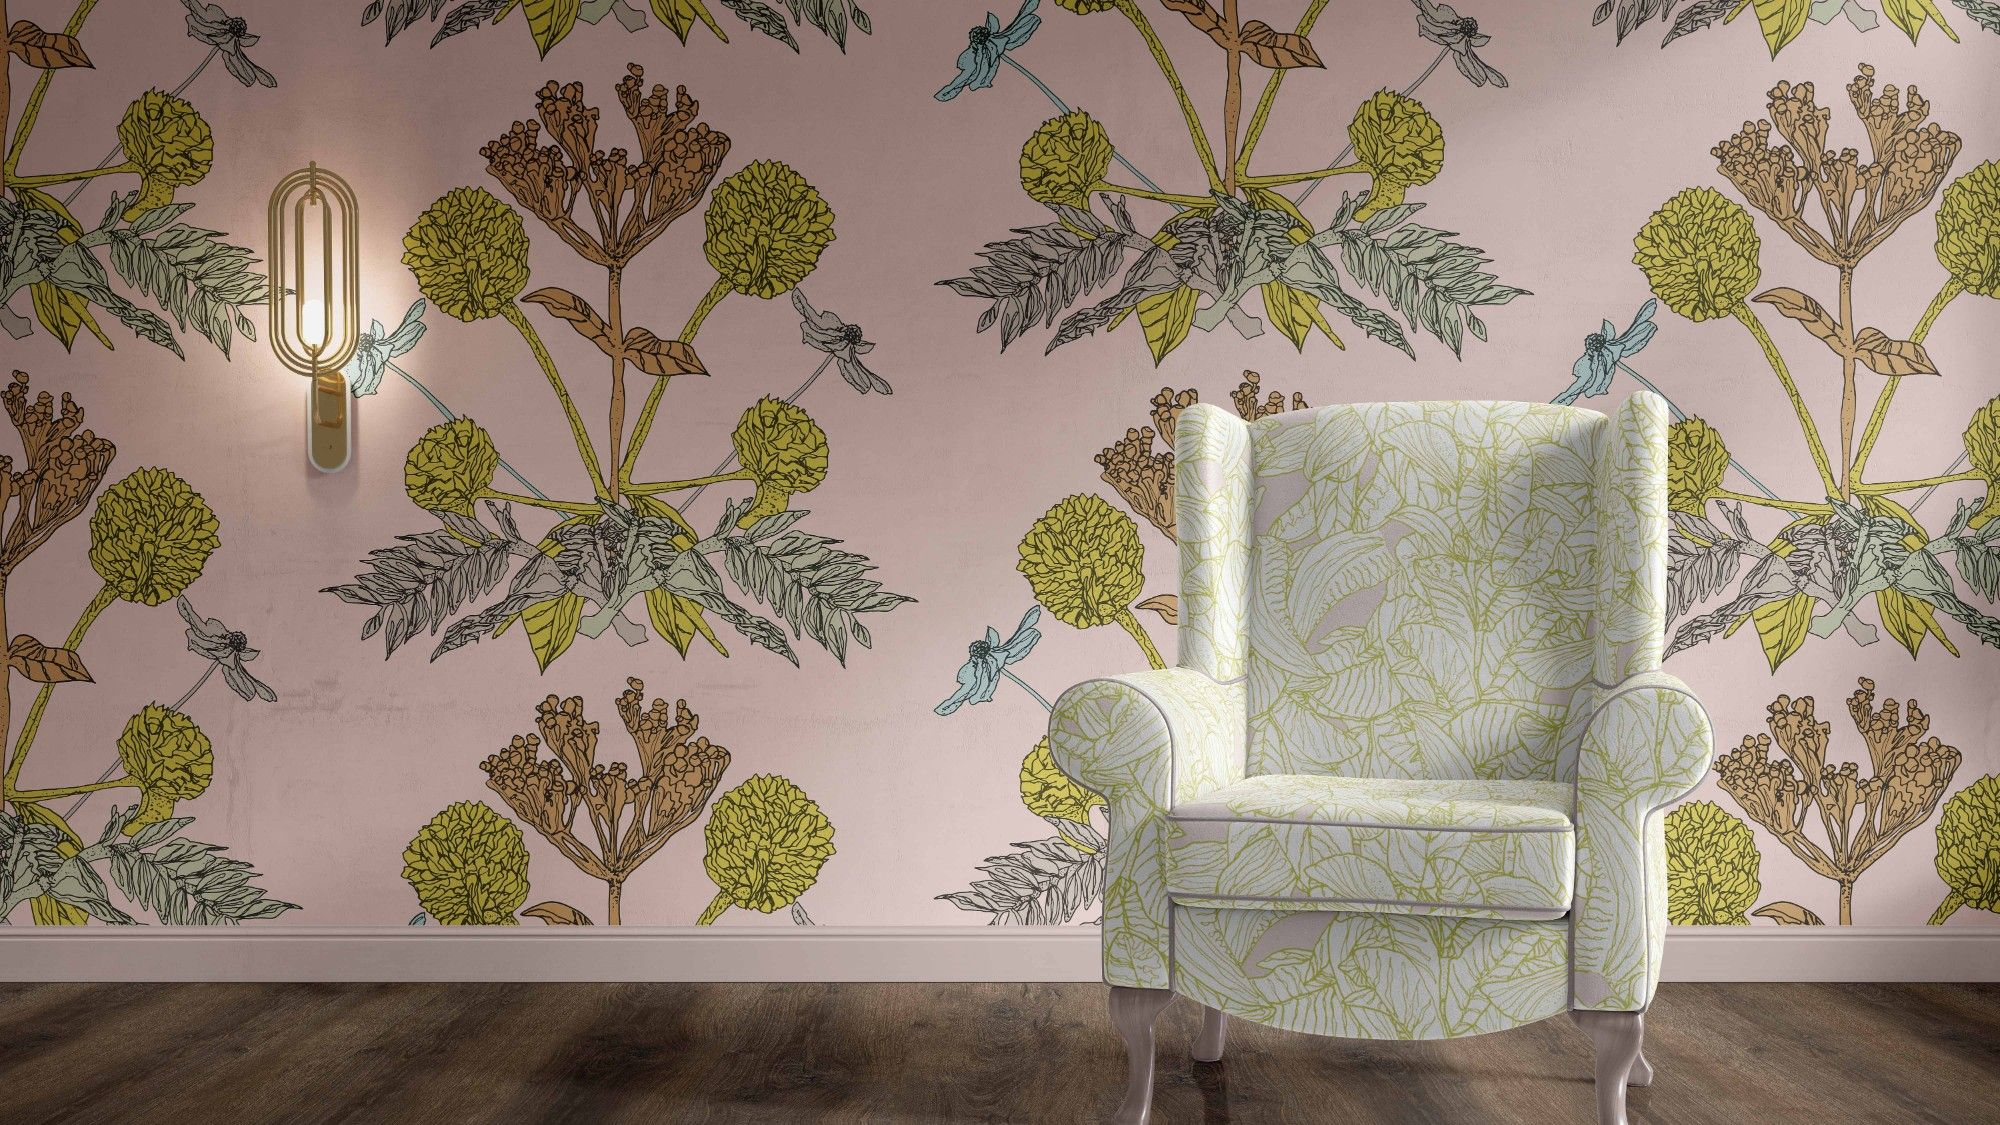 winter garden concept wallpaper upholstery